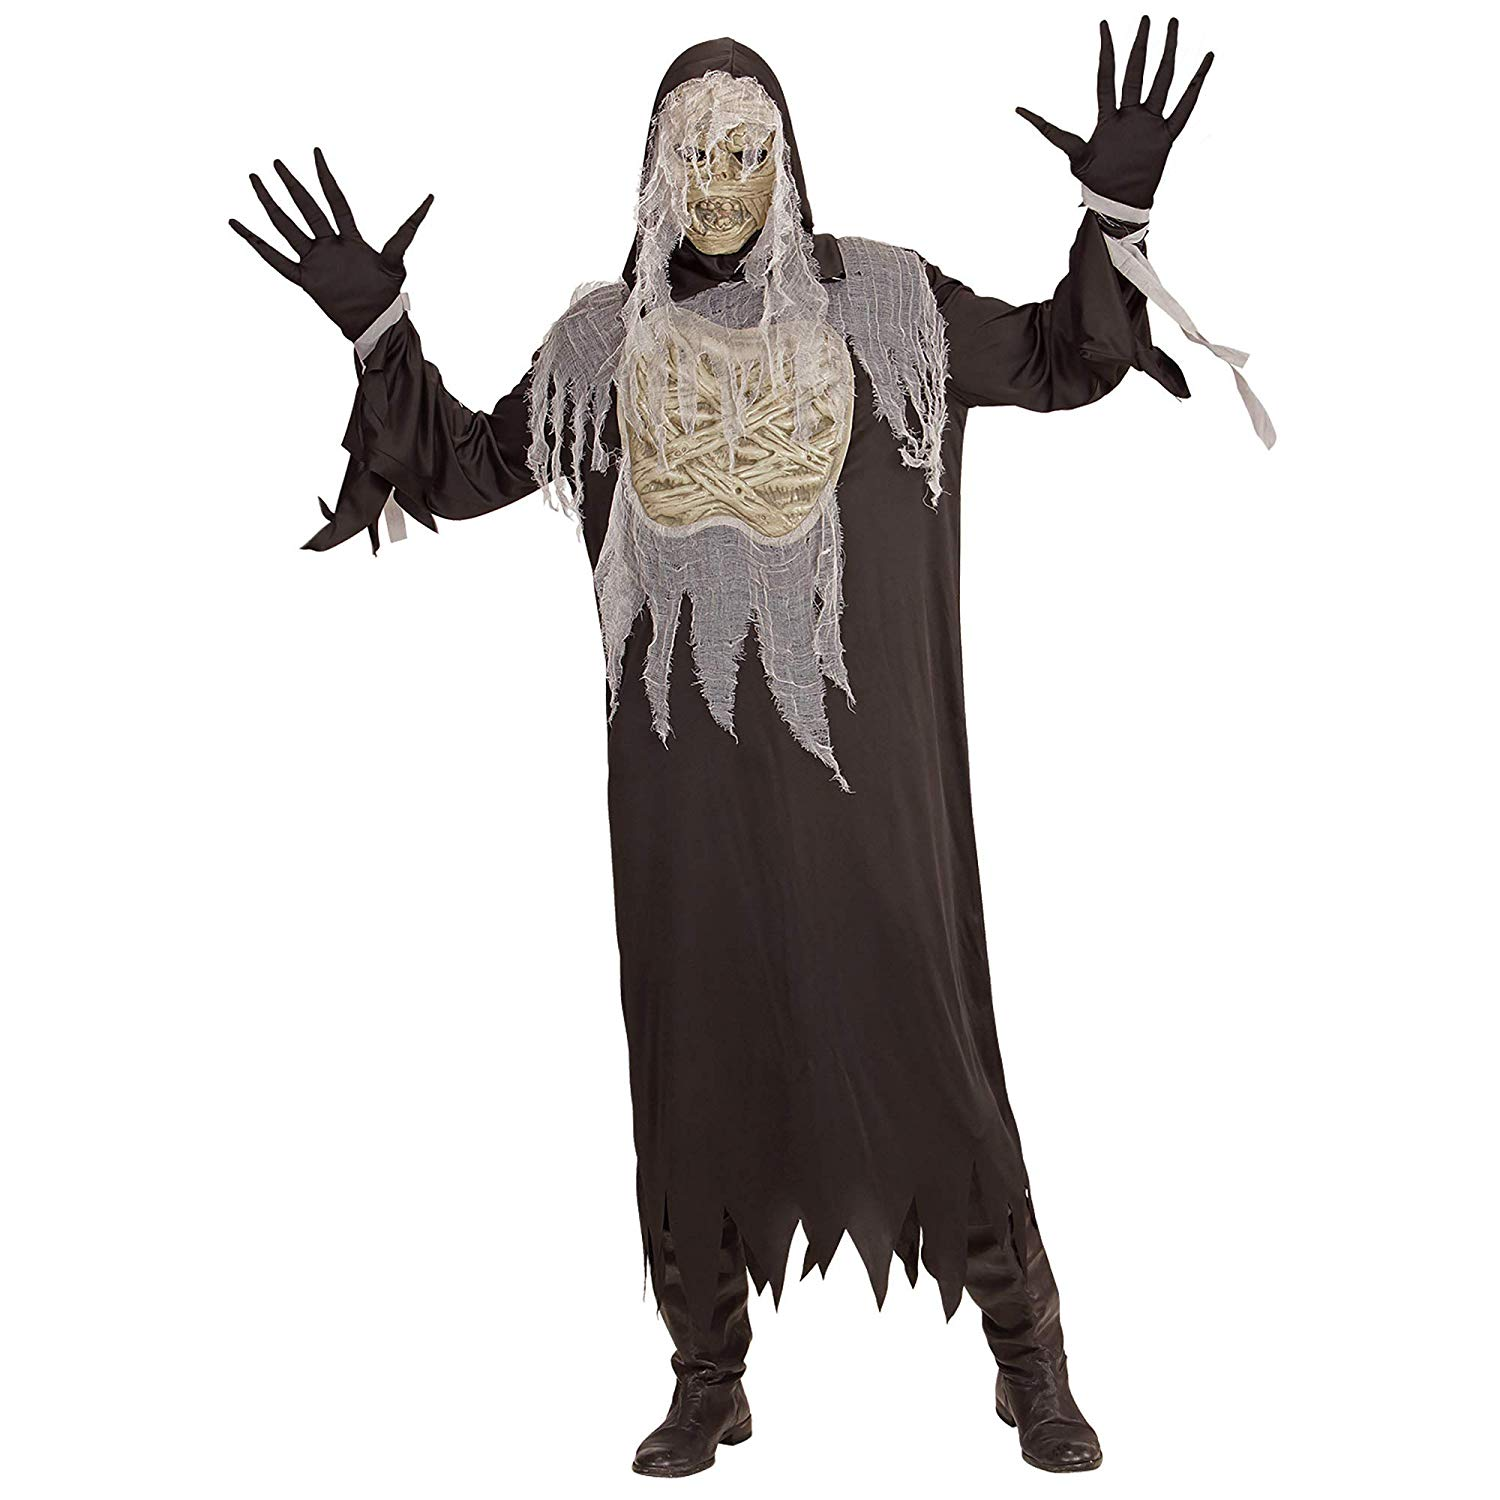 'Widmann Adult Costume Mummy